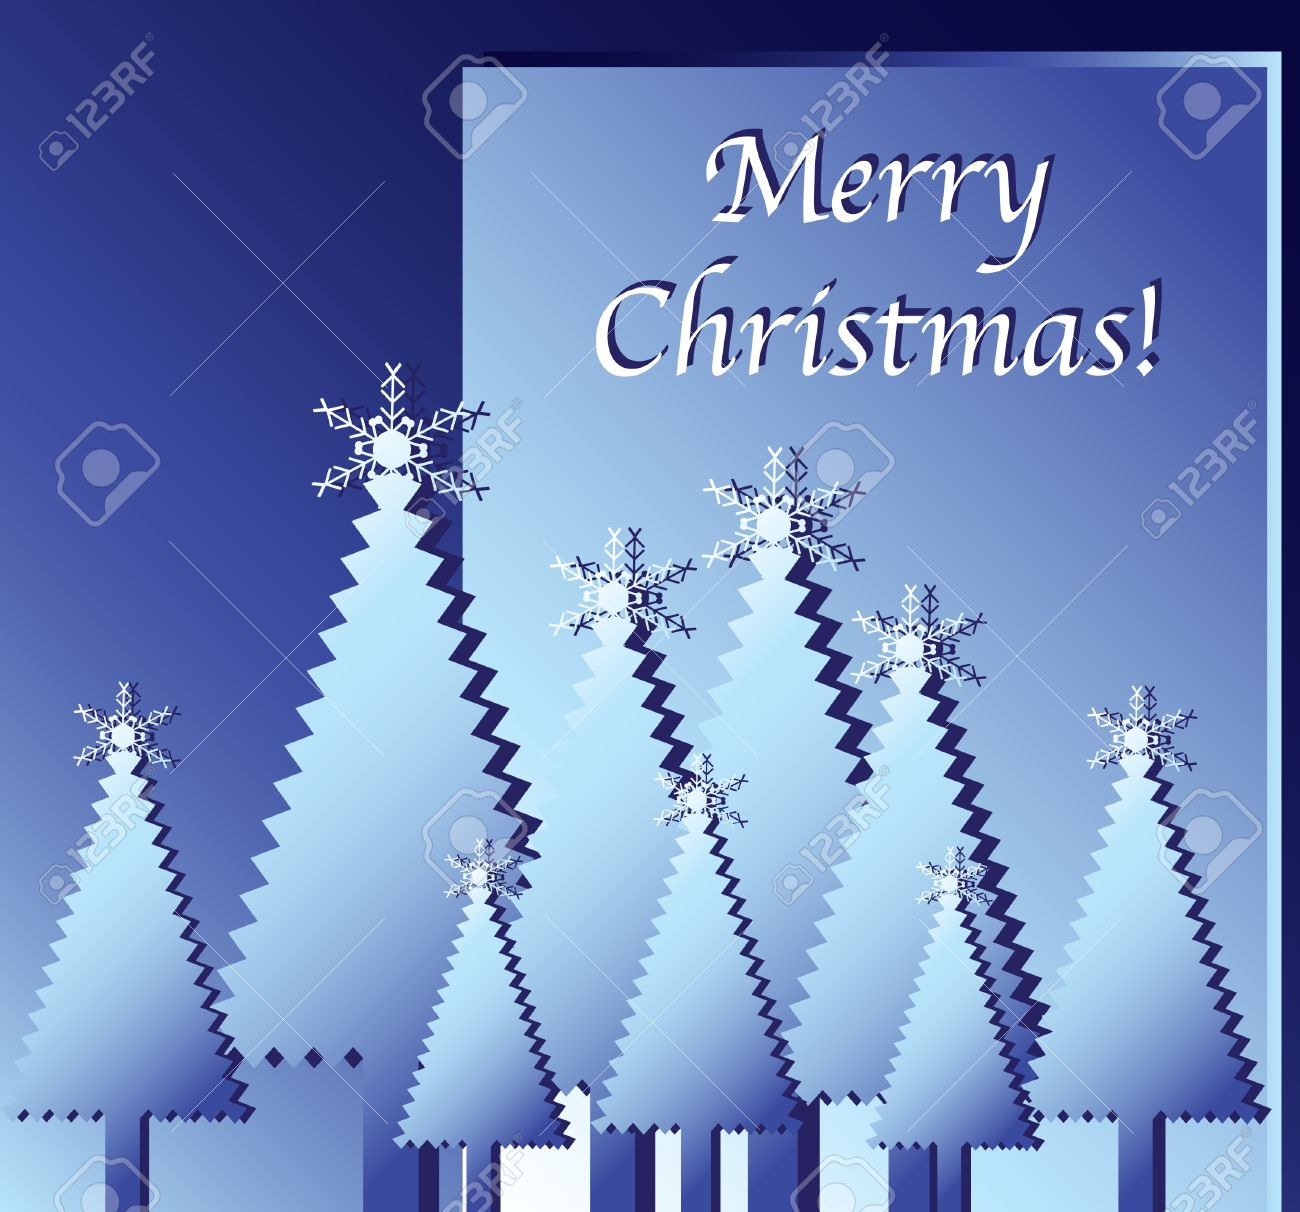 Merry Christmas wishes. Paper cut-out Christmas trees against blue. EPS10 vector format. Stock Vector - 10481437